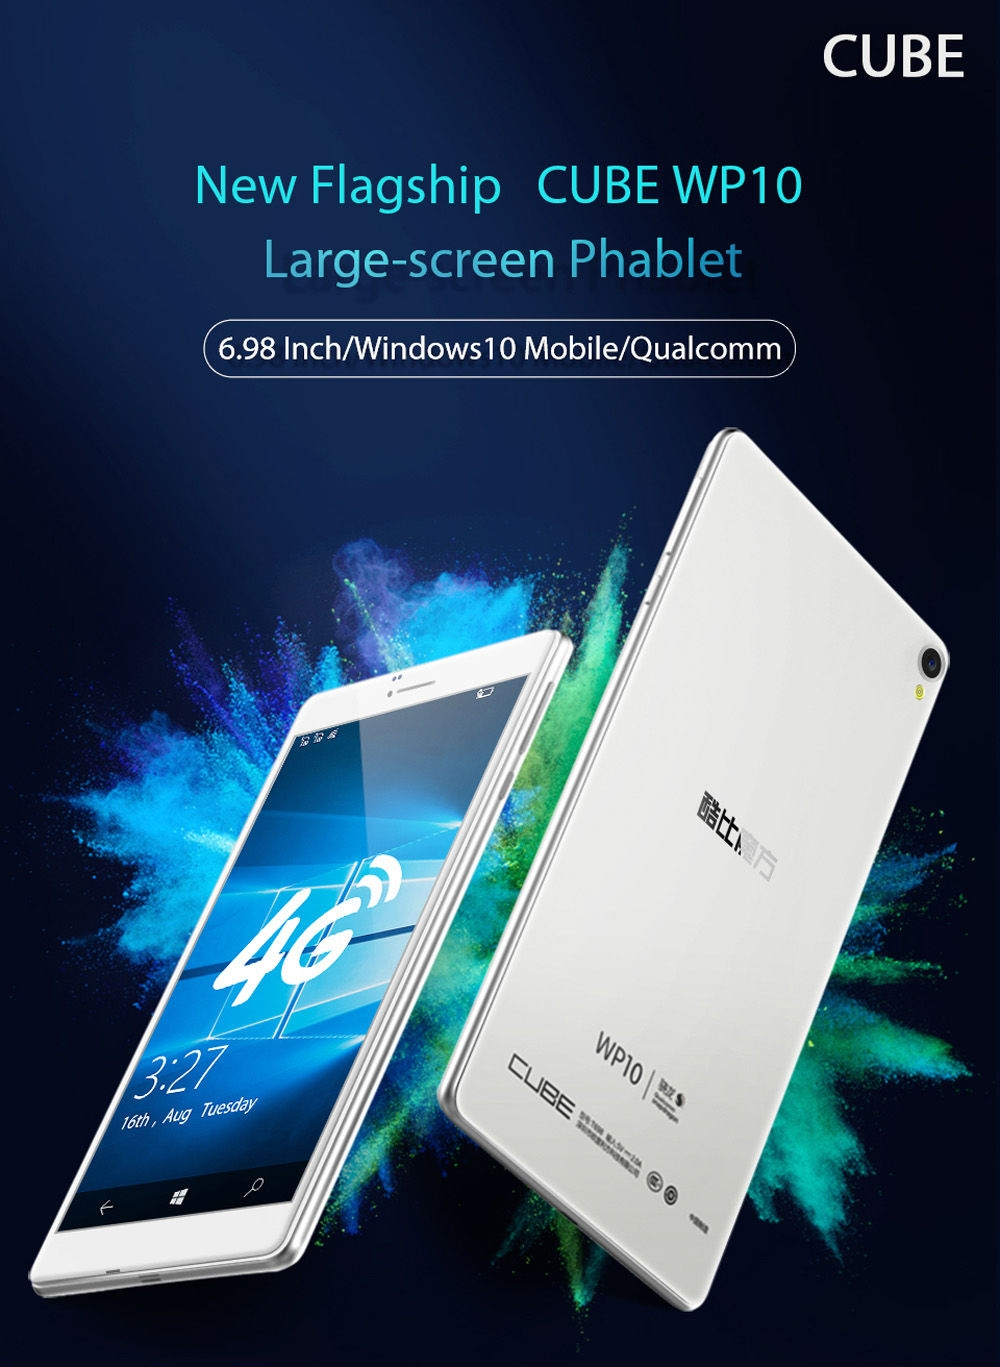 Cube WP10 6.98 inch 4G Phablet Windows 10 Mobile MSM8909 Quad Core 1.3GHz 2GB RAM 16GB ROM 5.0MP Rear Camera IPS Screen WiFi OTG GPS Bluetooth 4.1